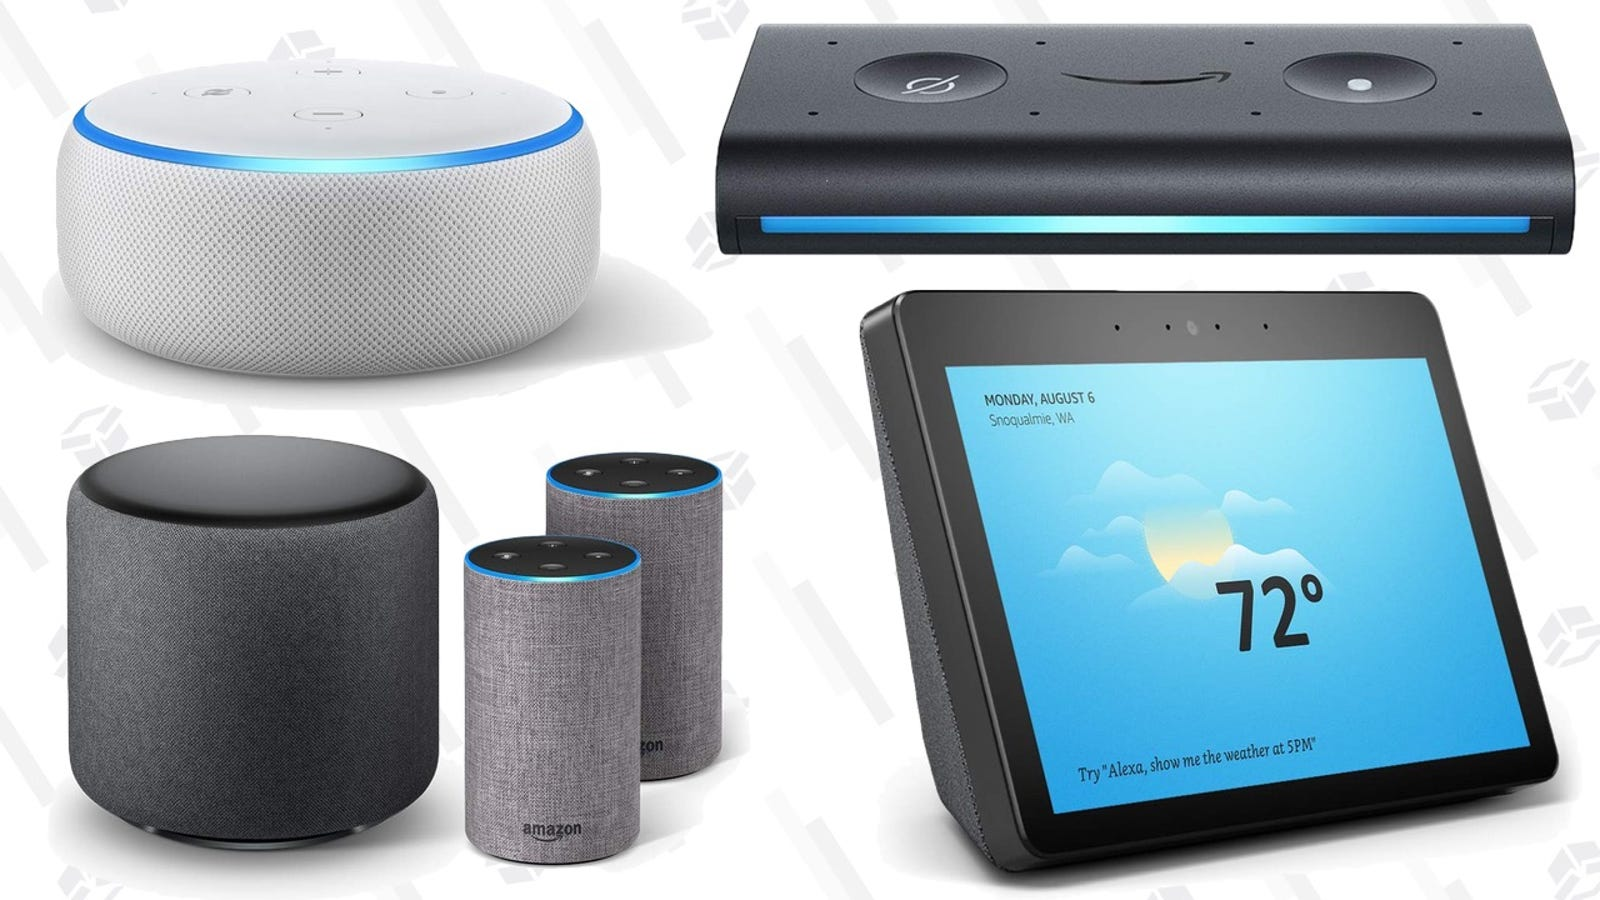 Amazon's Got a Bunch of New Toys, and You Can Order Them Now [Updating]